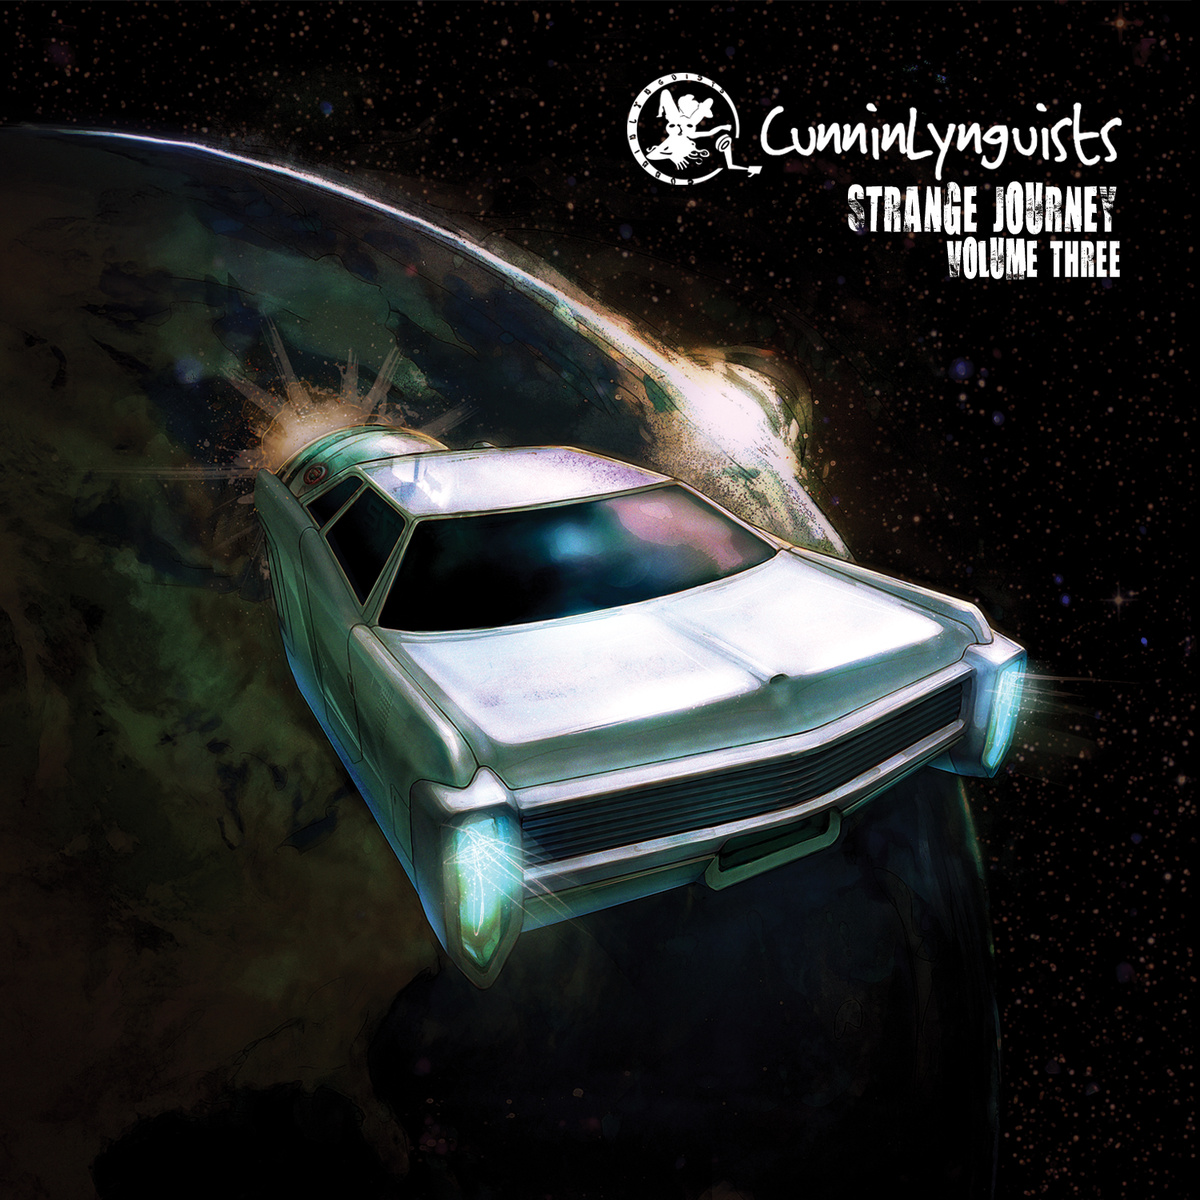 Cunninlynguist_-_strange_journey_volume_three